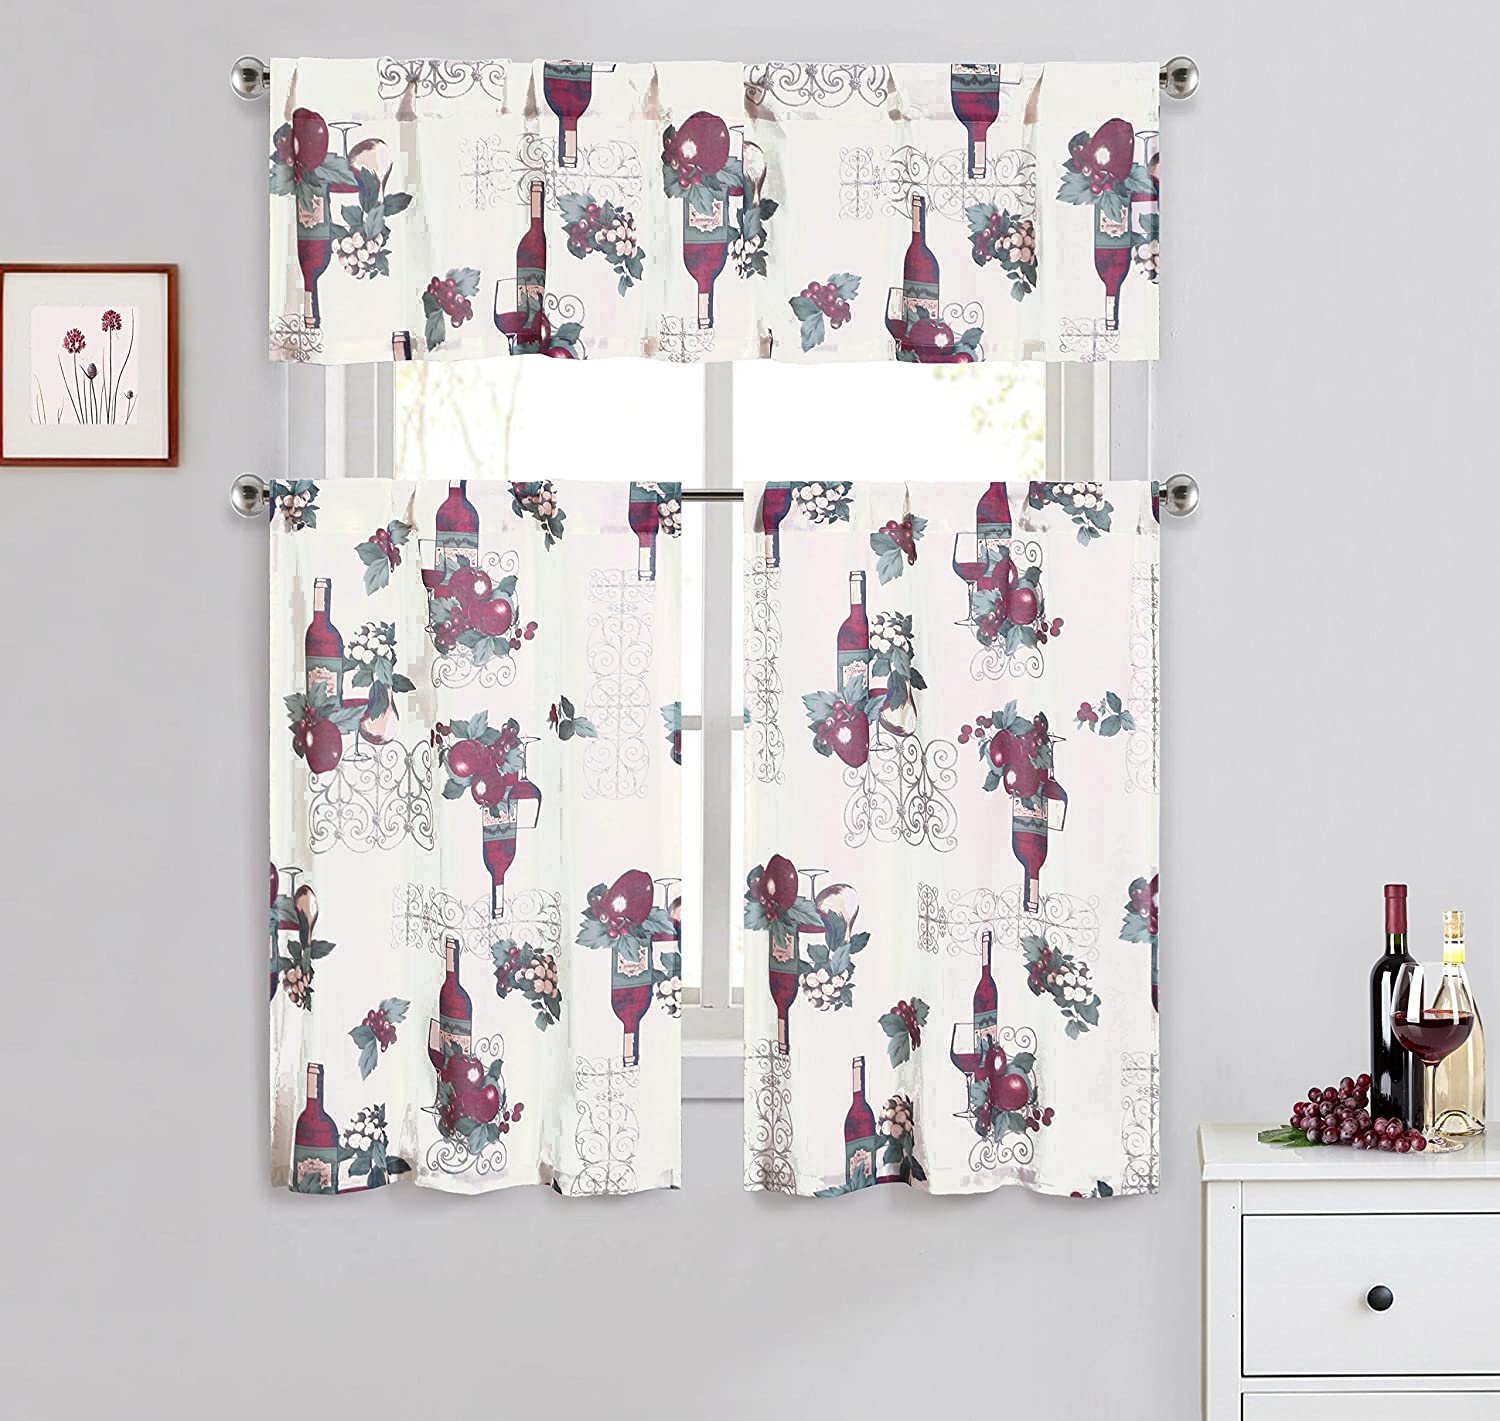 Cotton Blend 3 Piece Kitchen/Cafe Tier Window Curtain Set: Grapes Wine Design Bathroom and More KWC-WINE-MULTI